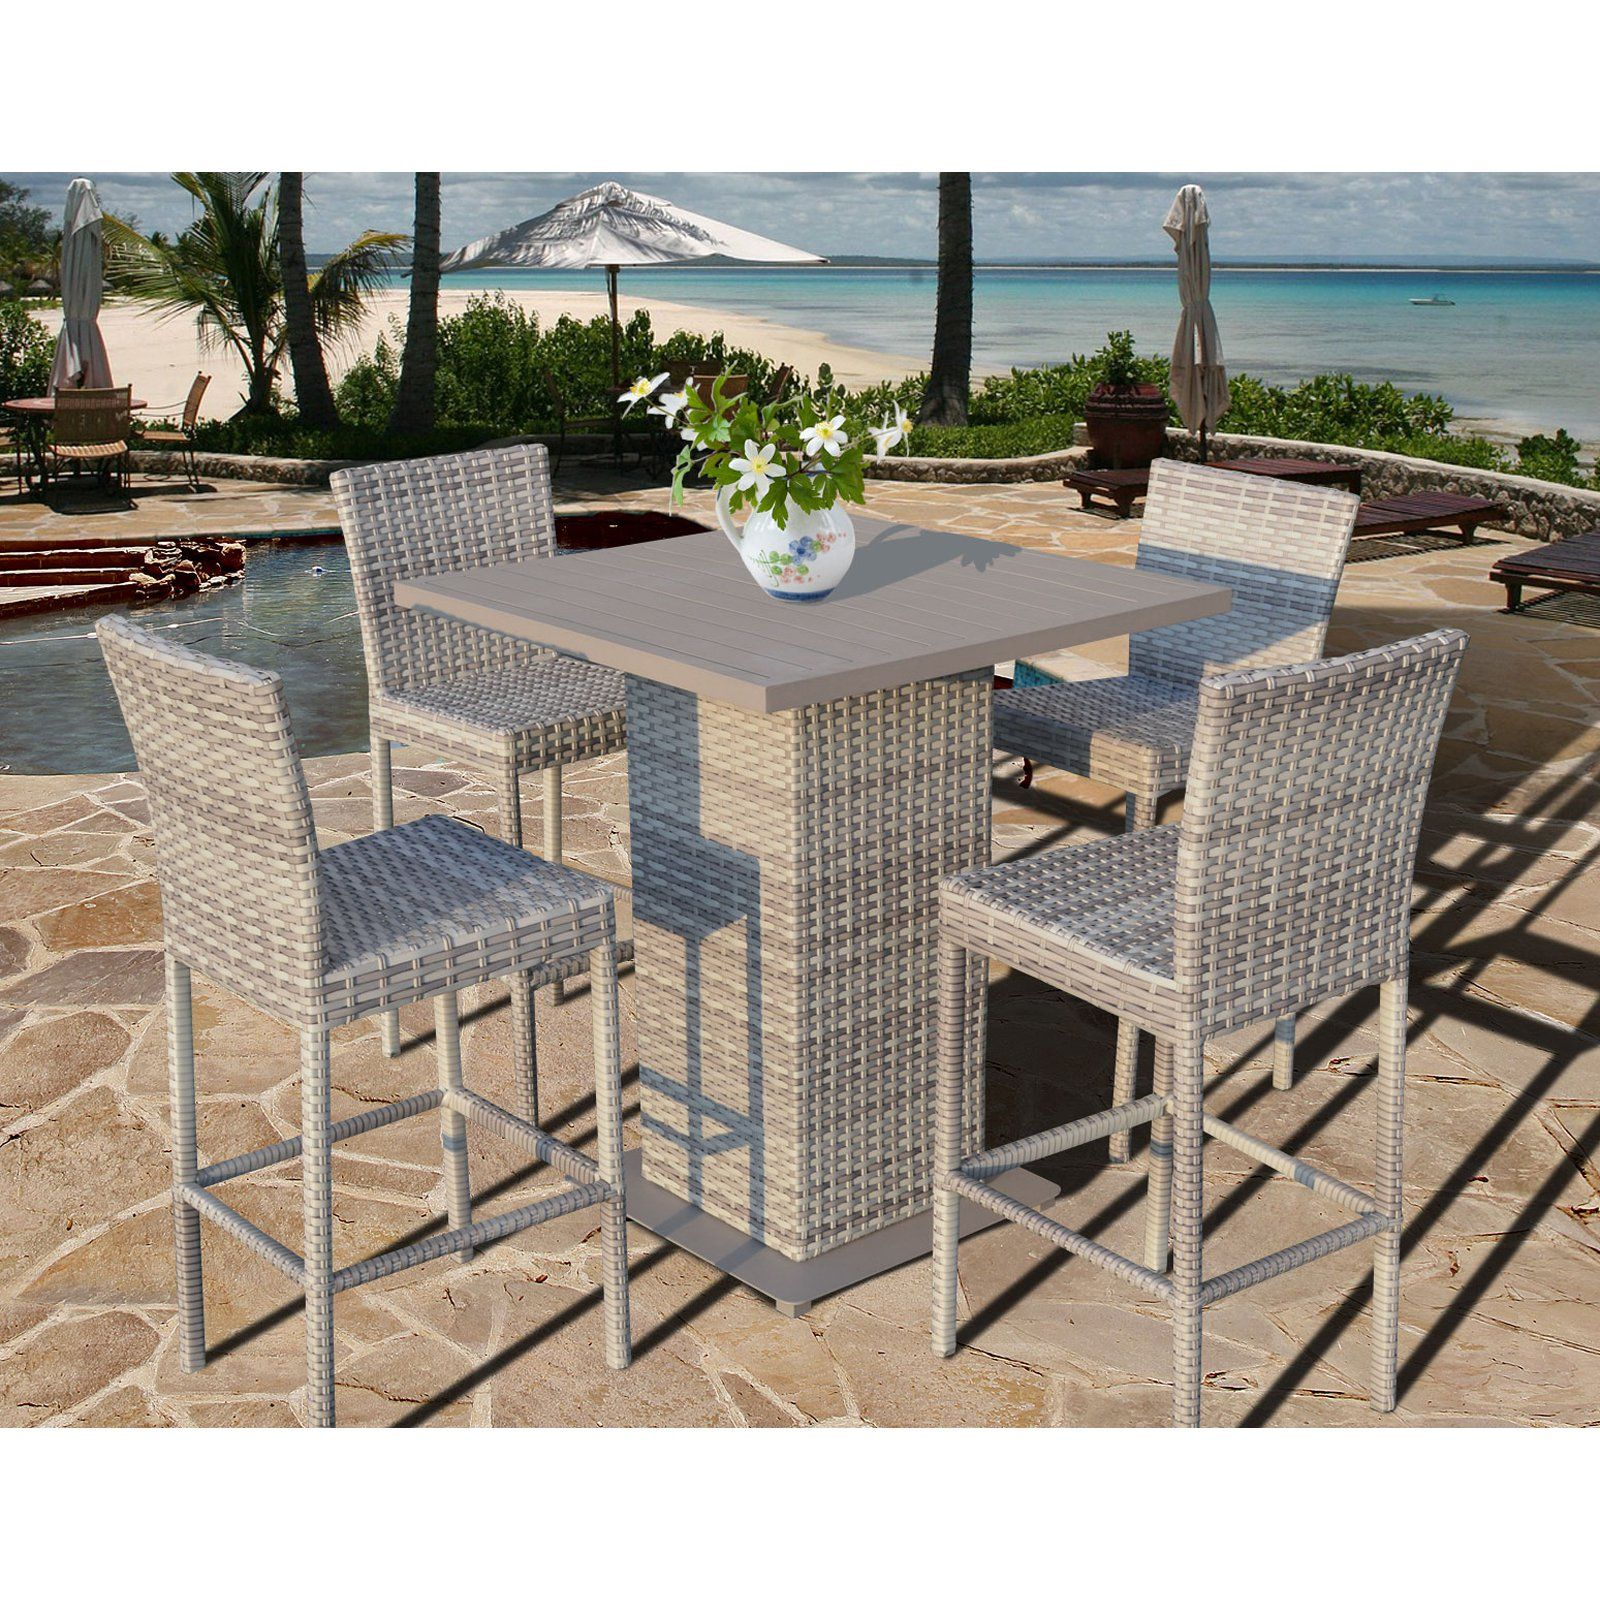 Fairmont Patio Furniture.Outdoor Tk Classics Fairmont All Weather Wicker 5 Piece Patio Pub